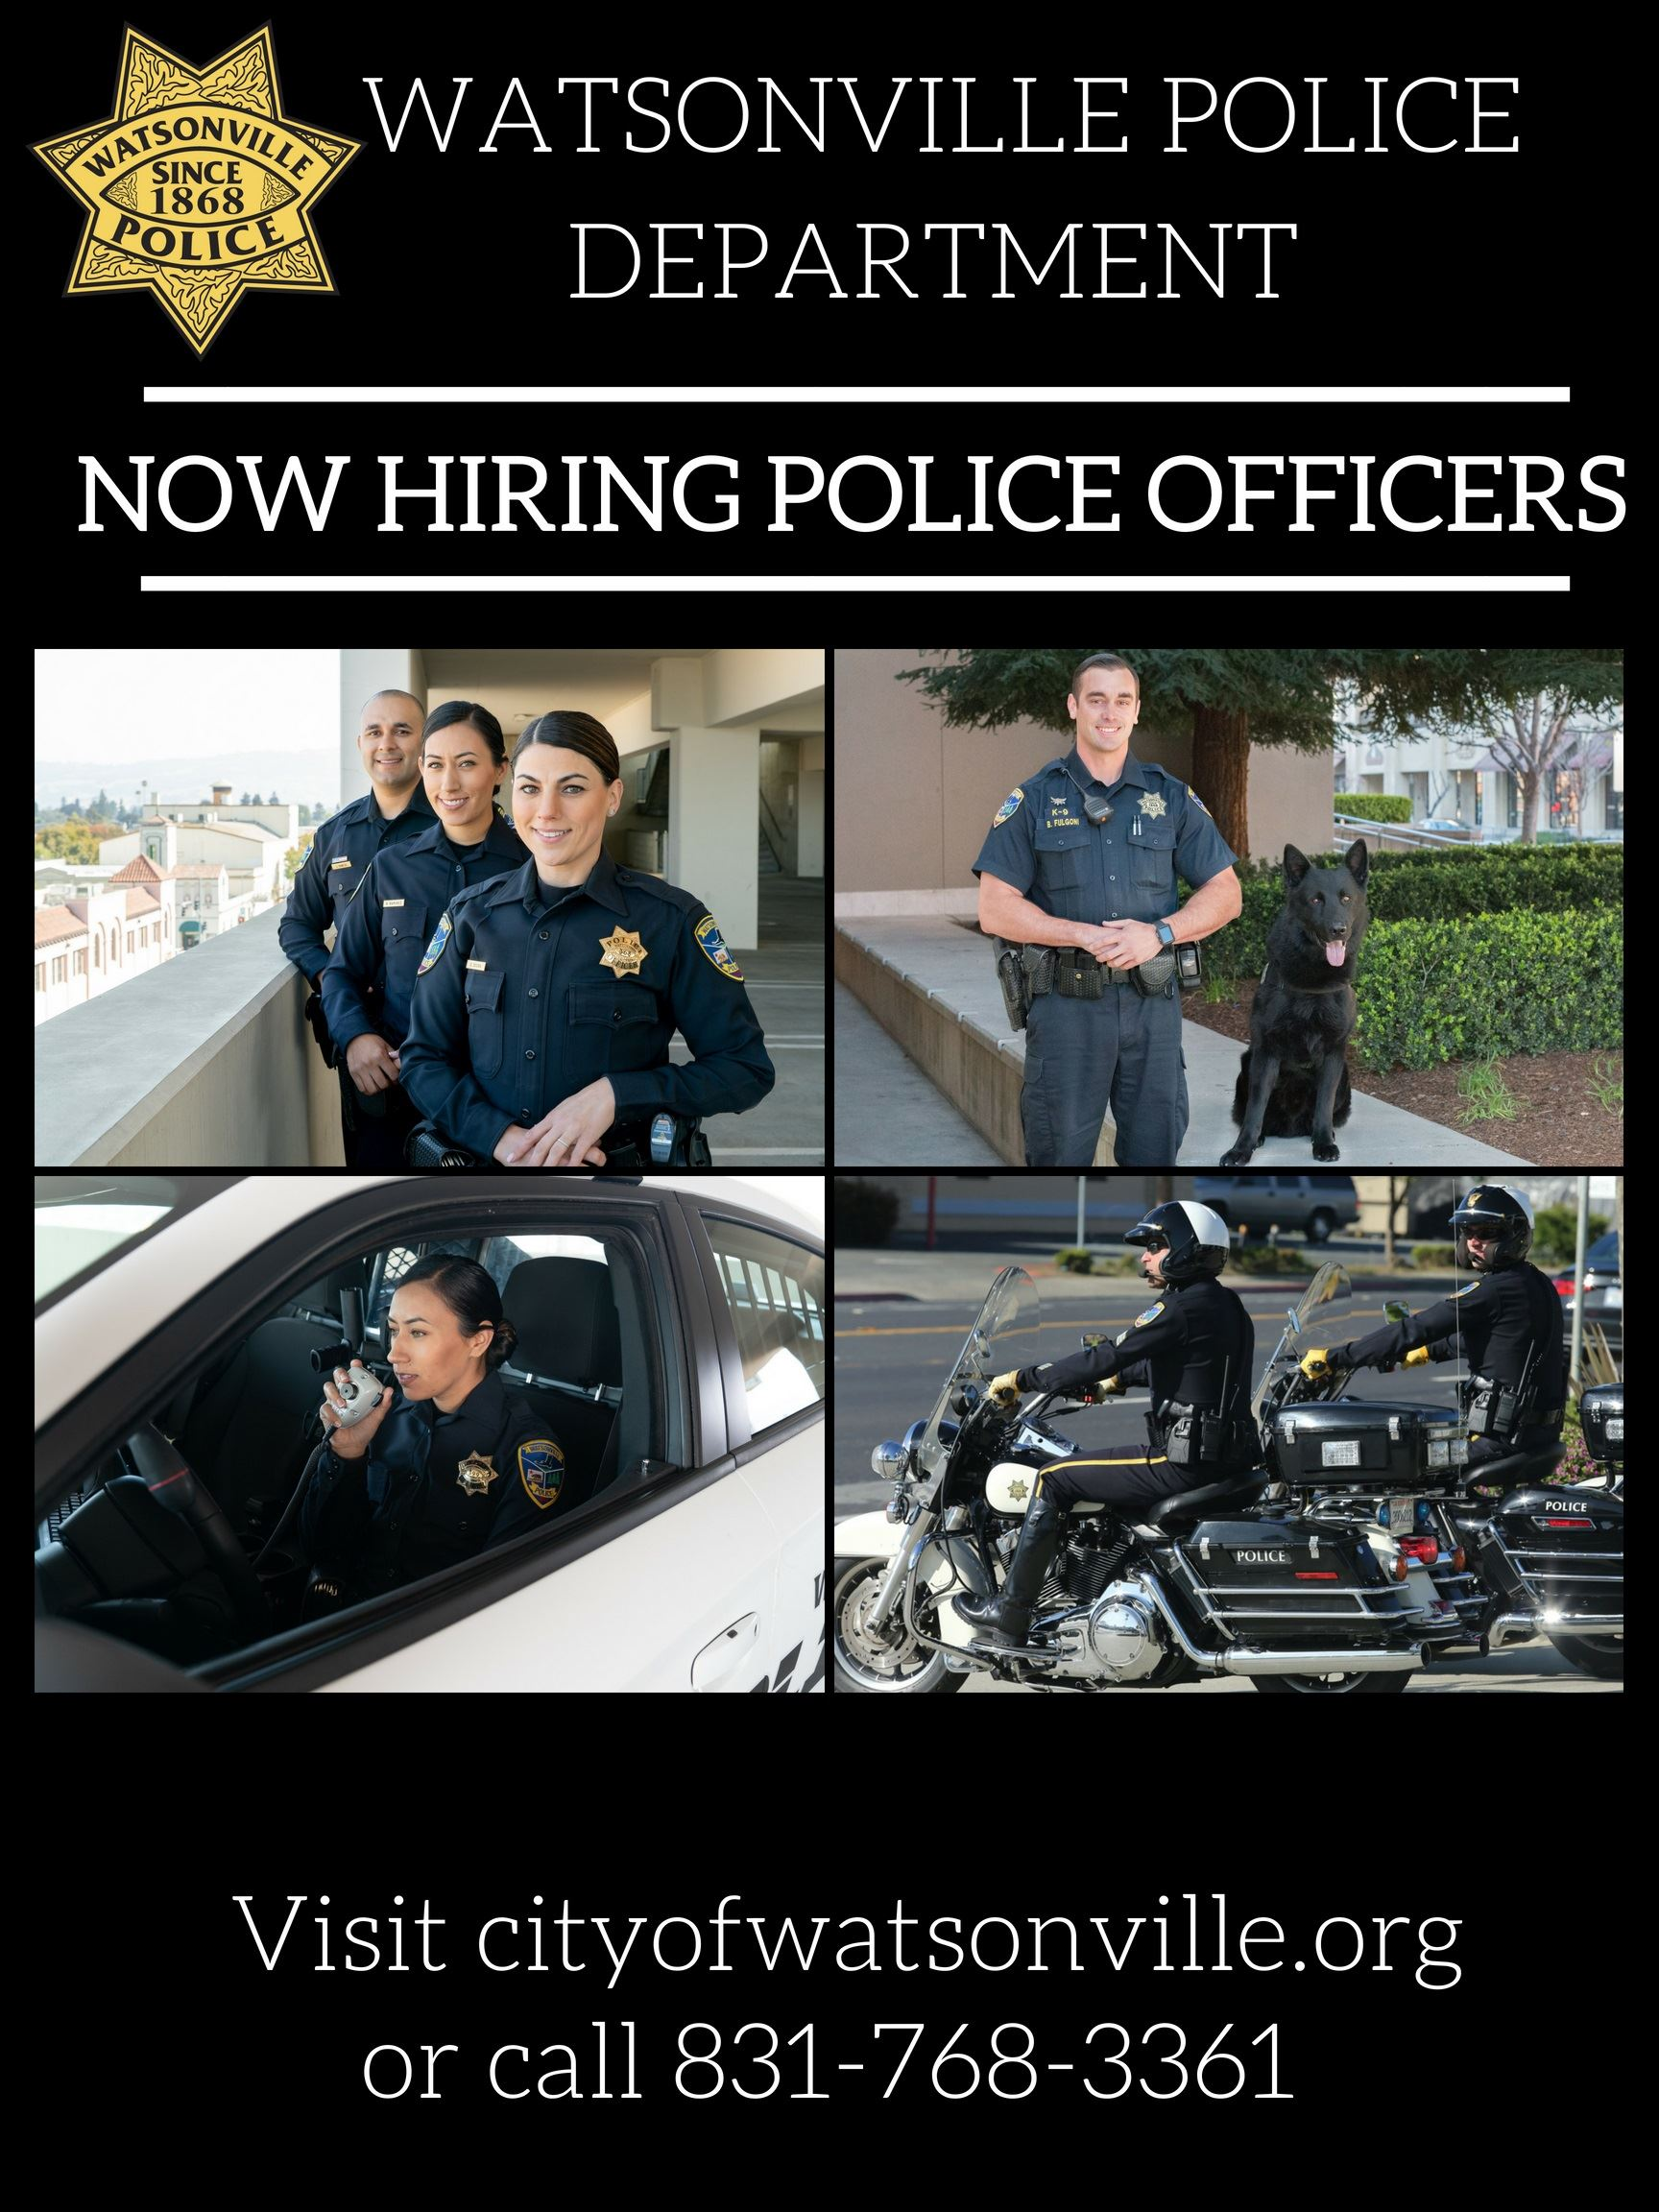 PD RECRUITMENT FLYER